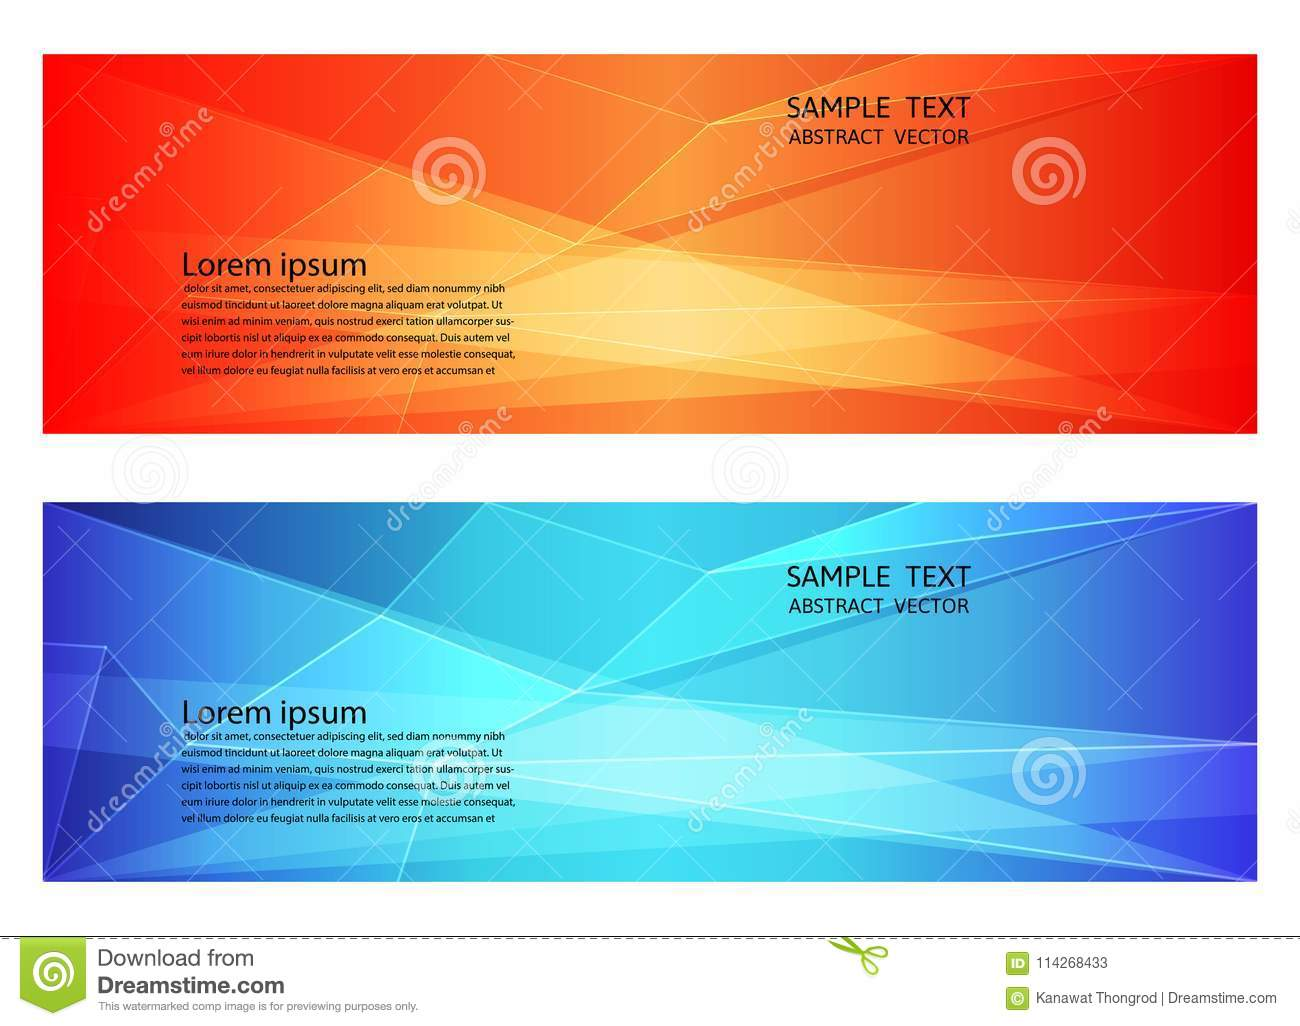 Abstract geometric red and blue color, Modern background with copy space, Vector illustration for your business banner